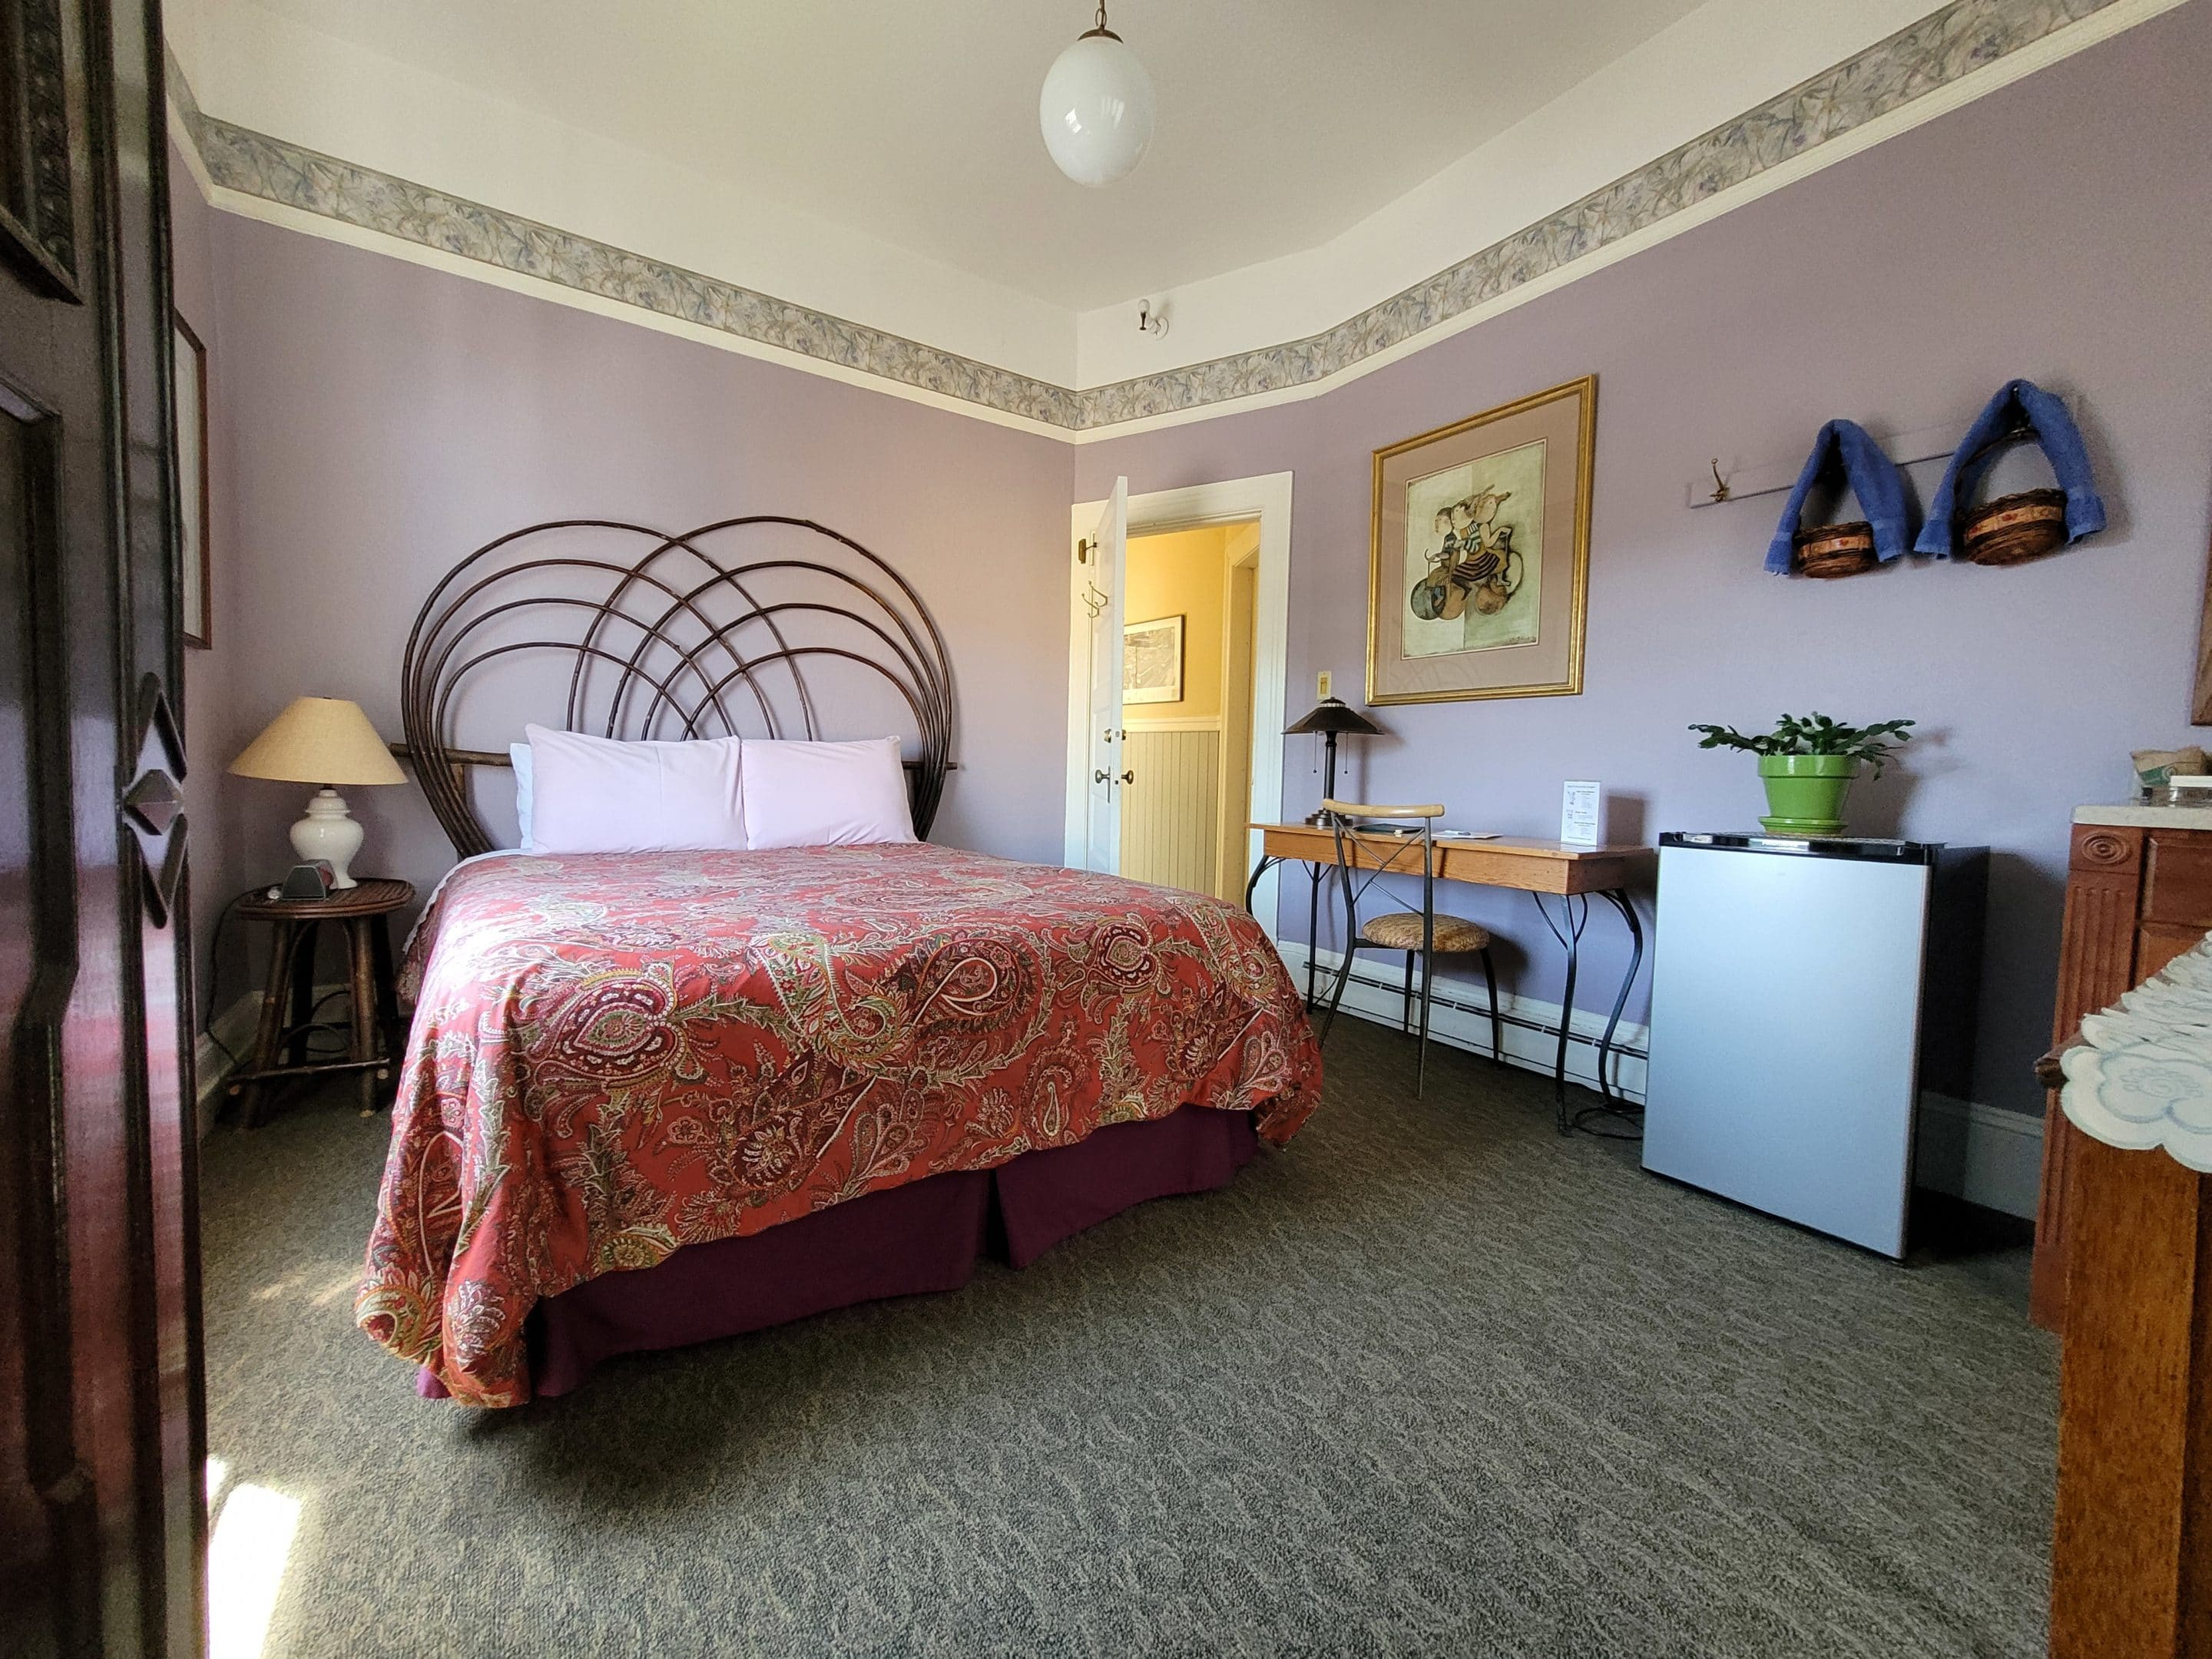 Room With Queen Size Bed, The Willows Inn Bed &Amp; Breakfast